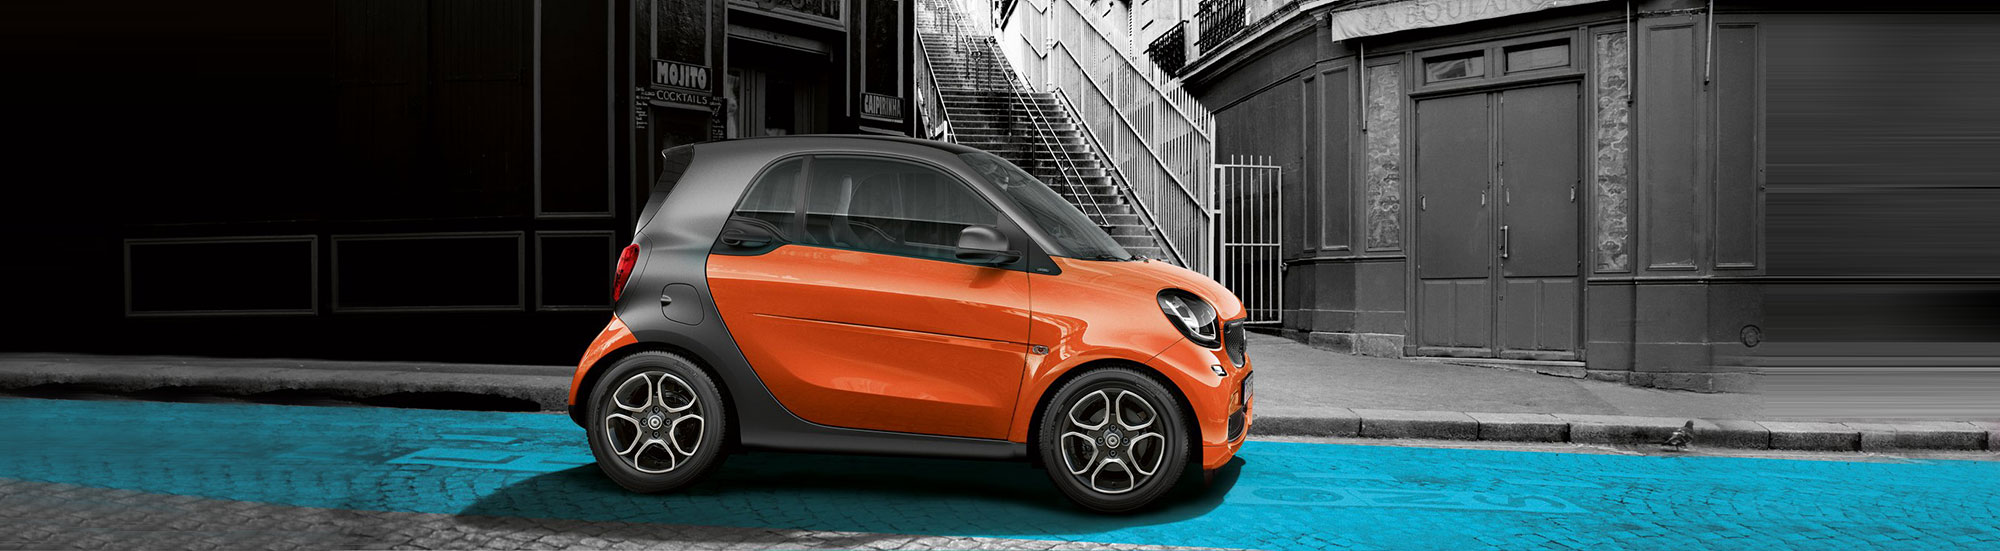 Fortwo1